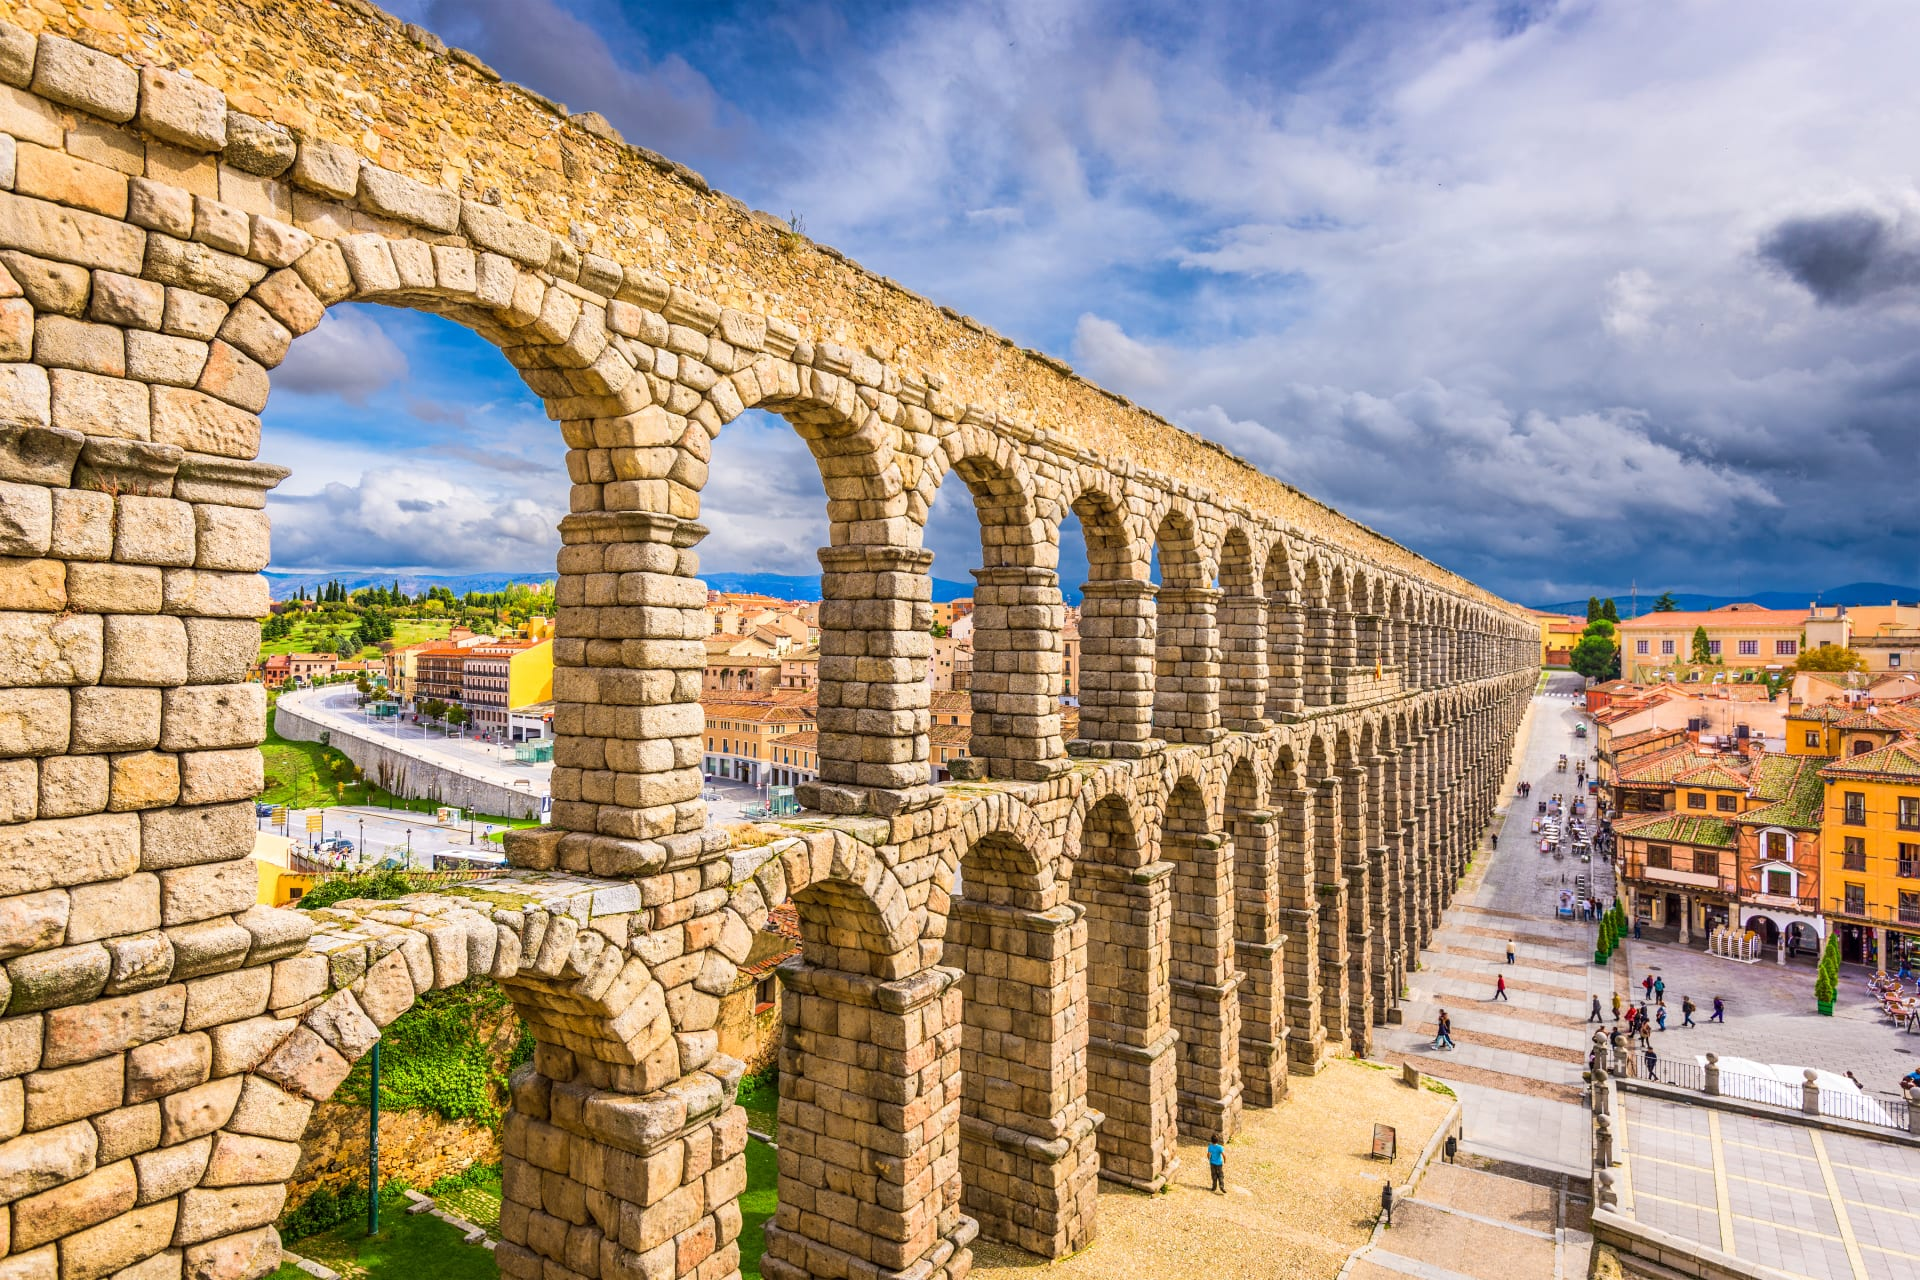 Segovia - The Impressive Roman Aqueduct: From the Beginning to the End of the Arcades